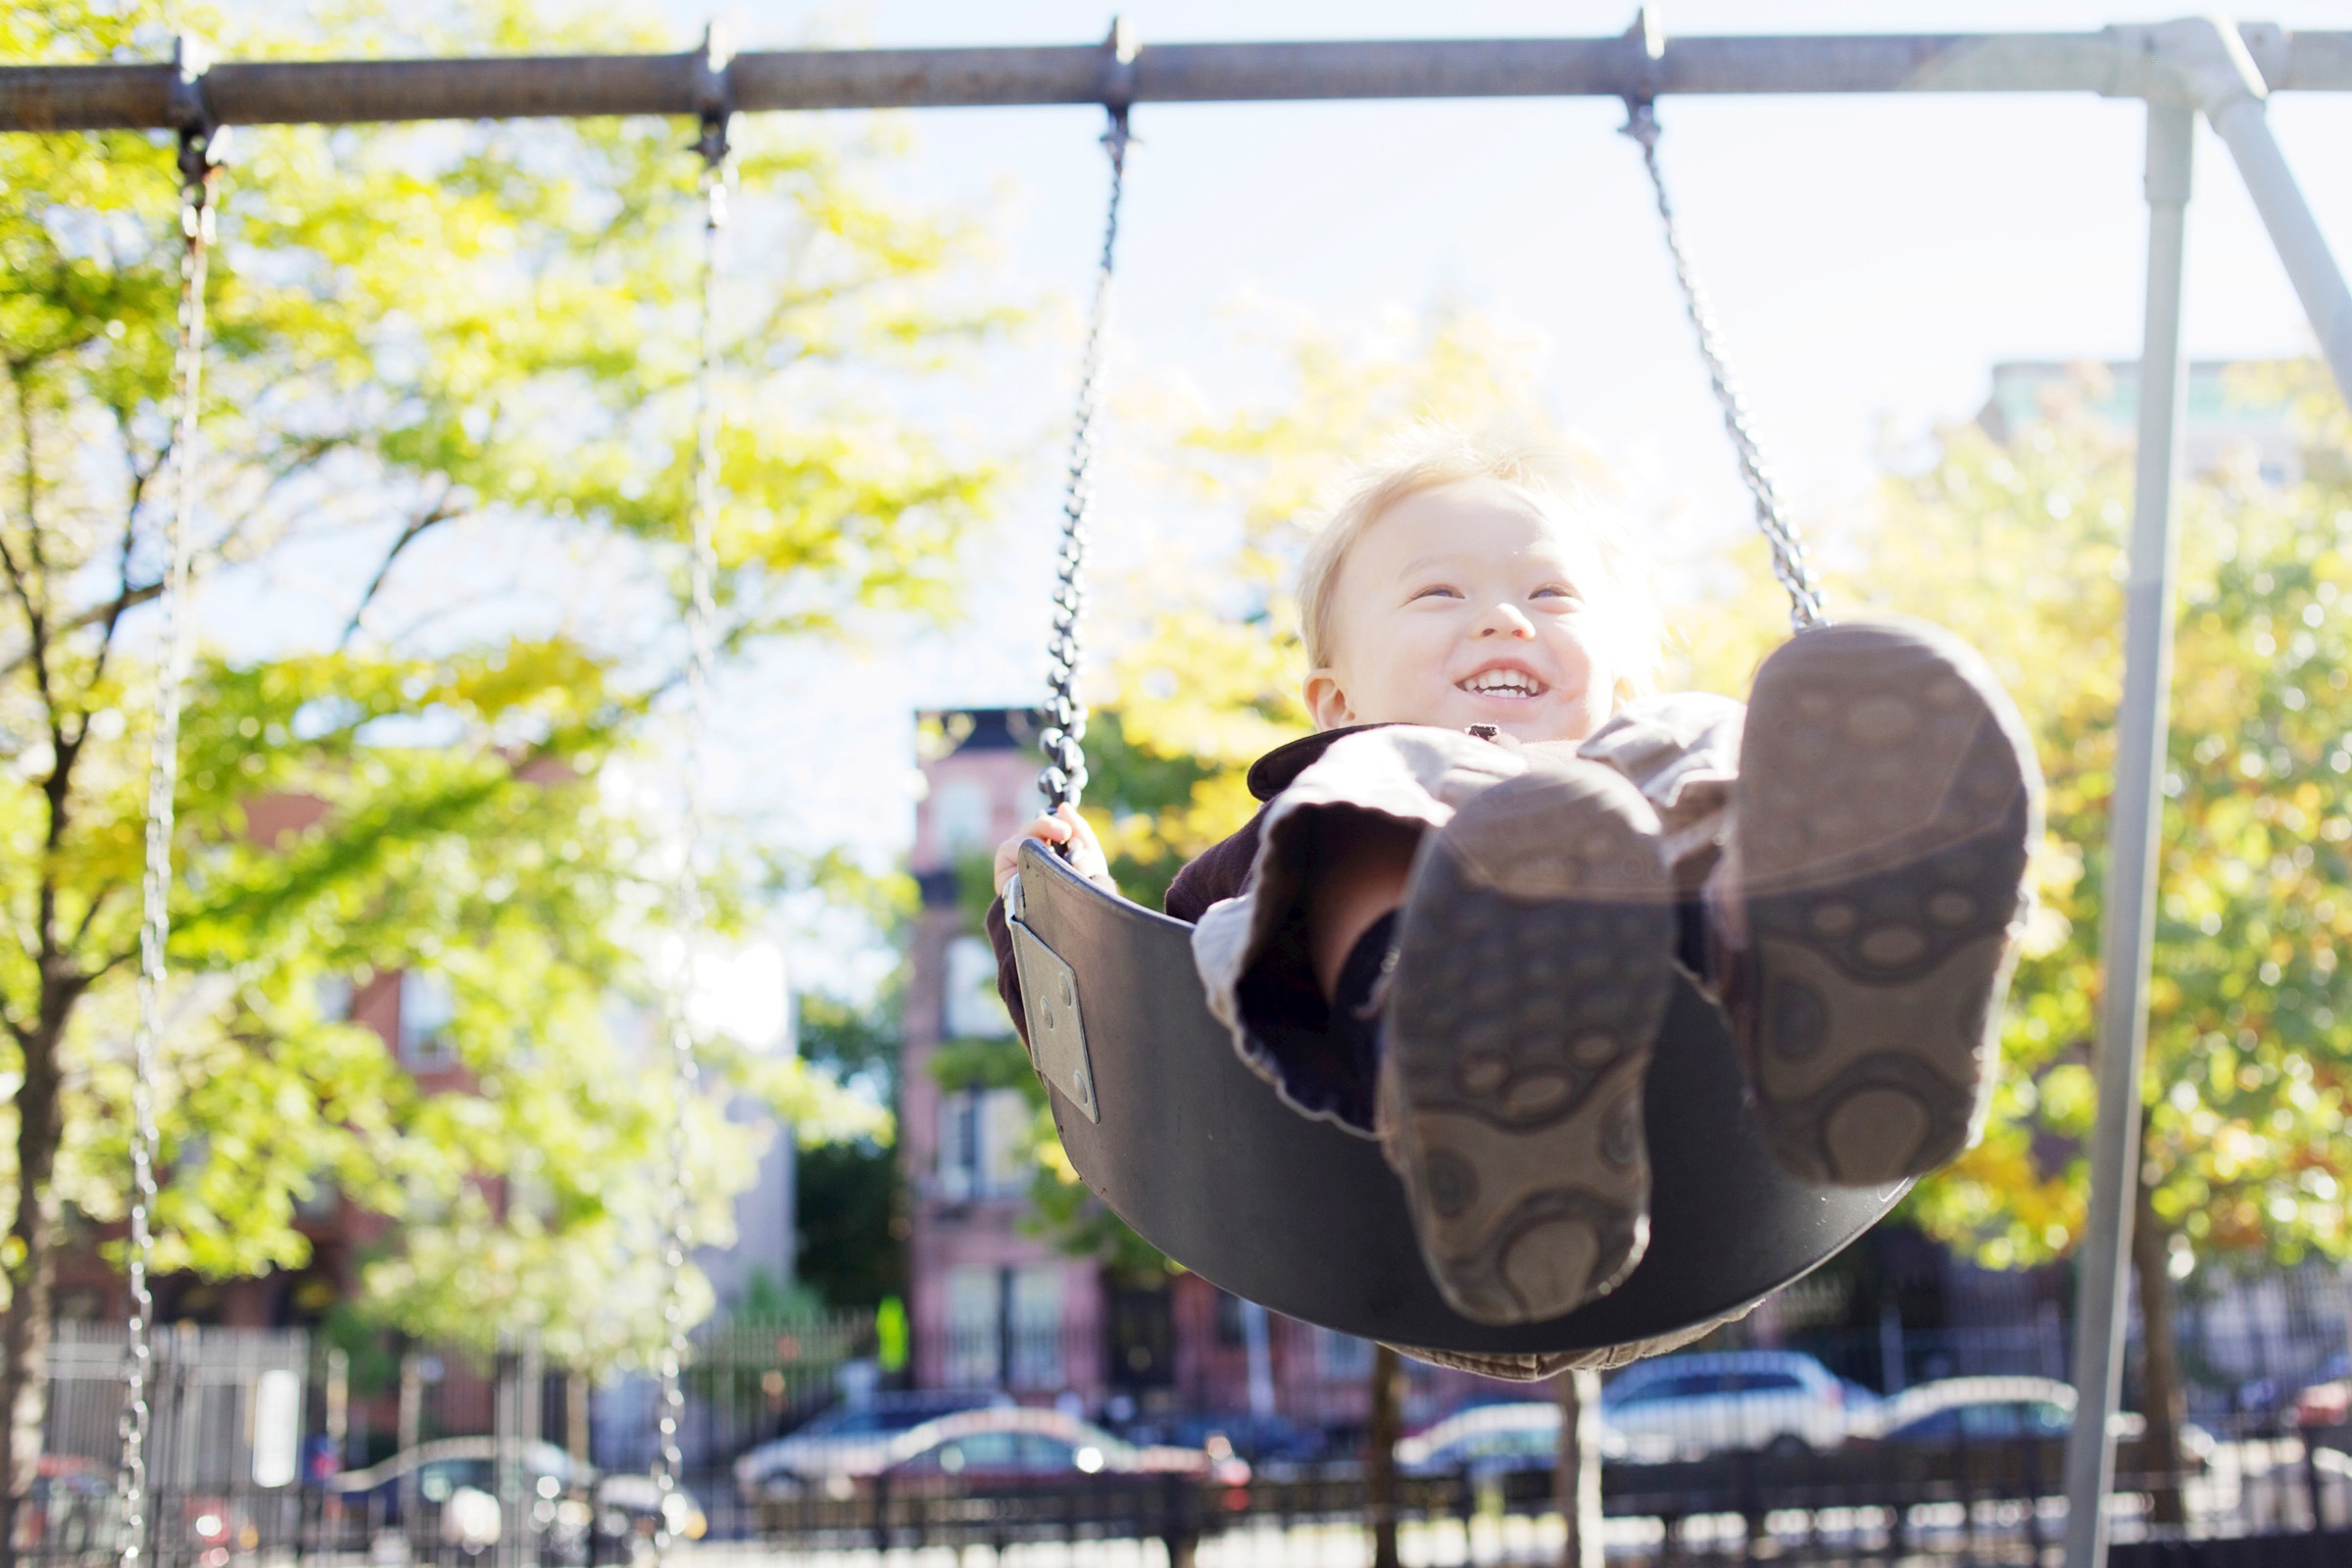 Have your child sit on the swing facing away from the sun if possible!